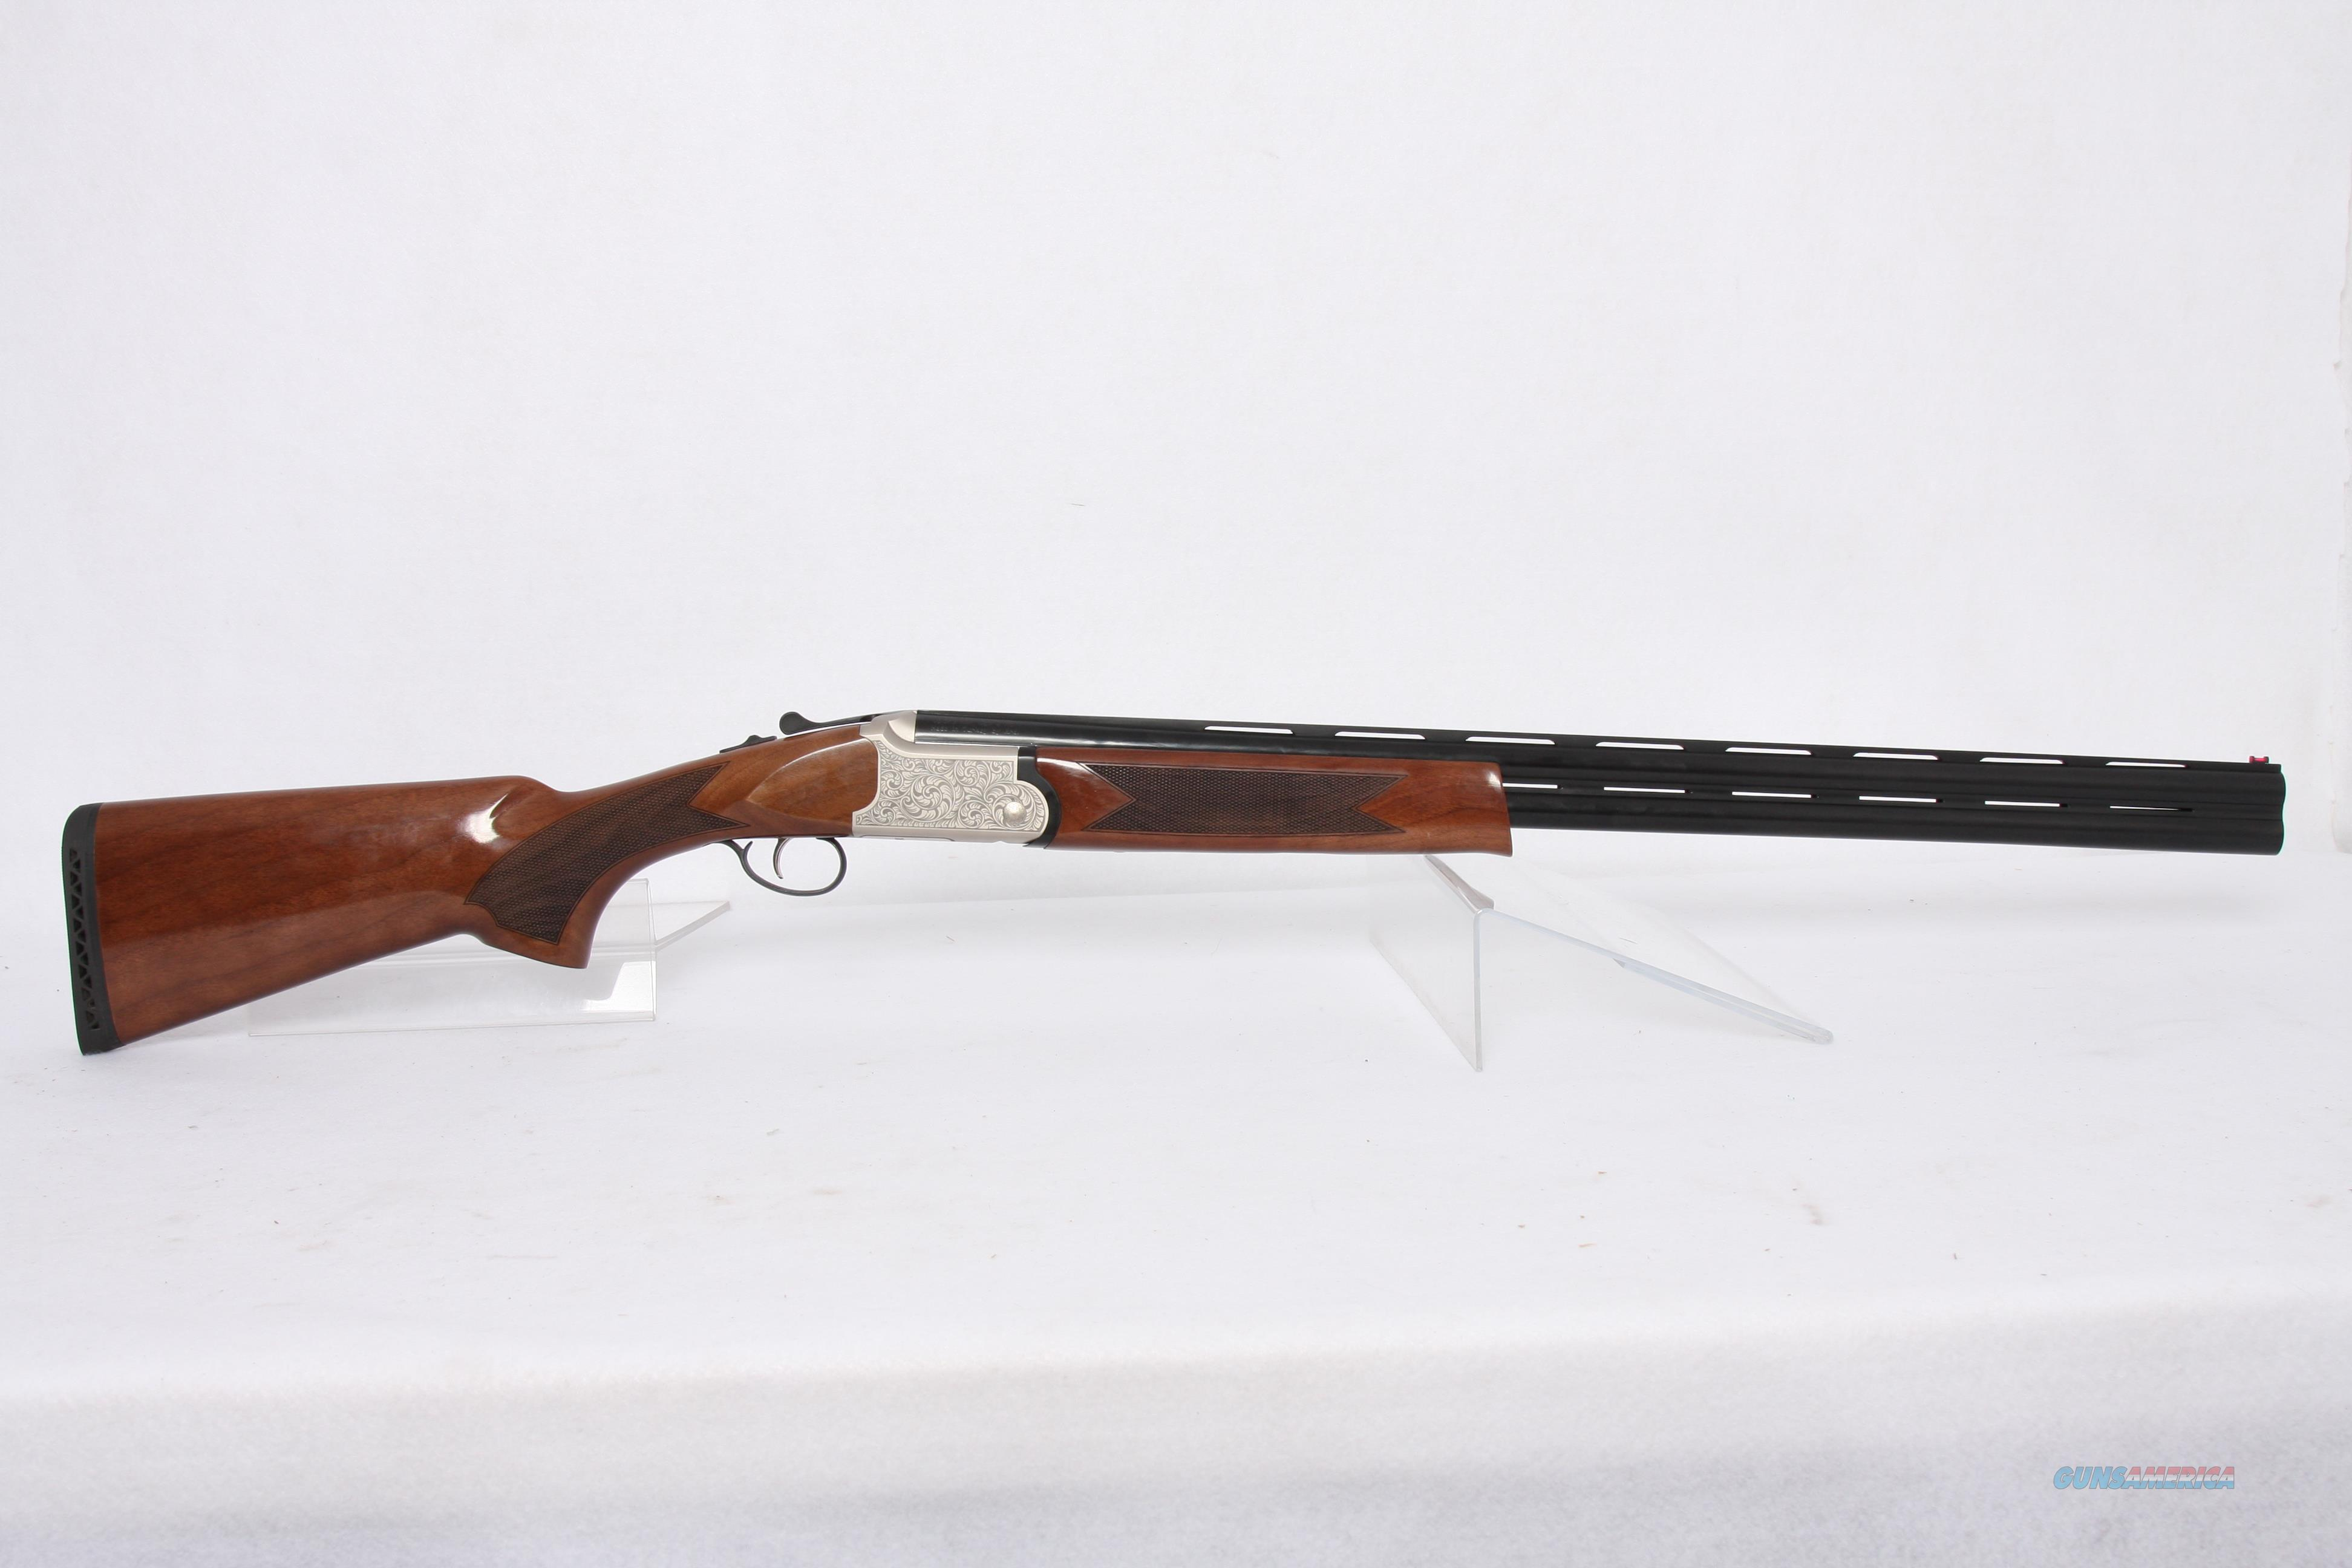 Tristar Upland Hunter 12g 28in Blued  Guns > Shotguns > Tristar Shotguns